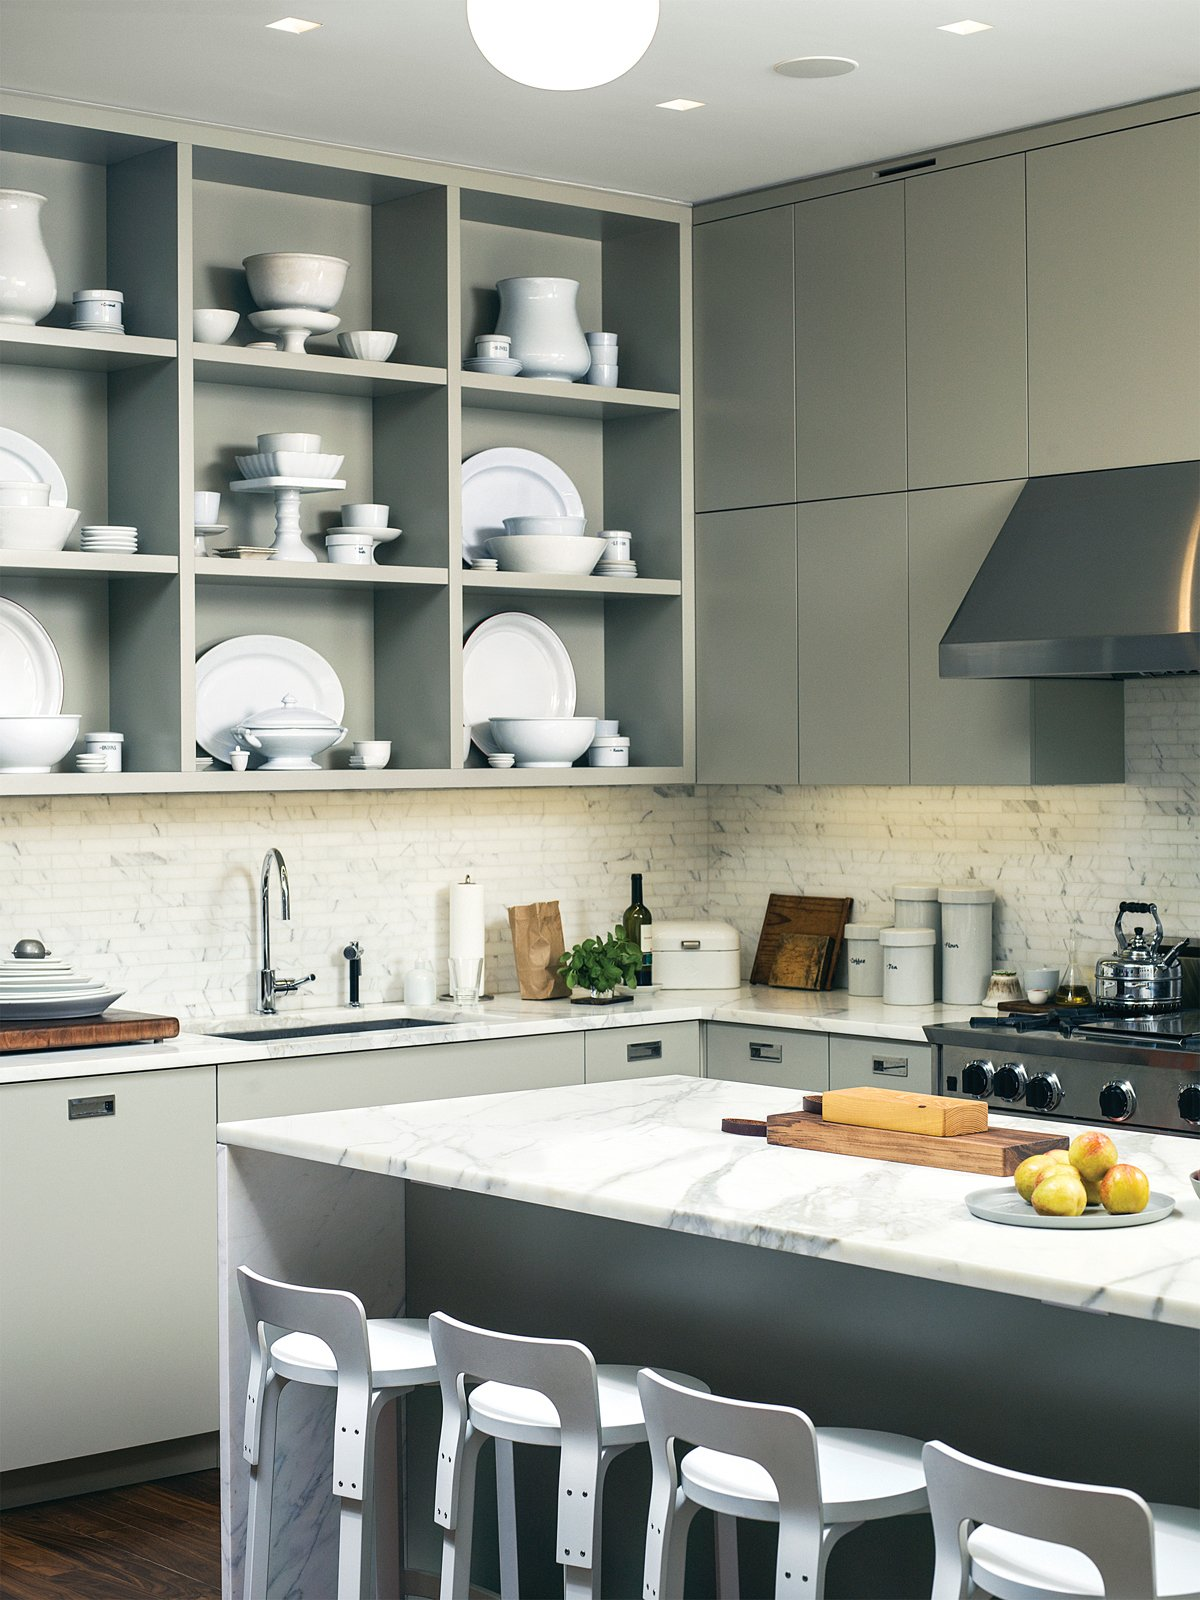 """Custom kitchen cabinets designed by Pulltab and fabricated by Maciek Winiarczyk hold mostly vintage ironstone that Geiger has found at flea markets and estate sales over the past 20 years. """"I love white,"""" she says, """"because I think food always looks better on it."""" She also collects vintage wooden cutting boards, shown resting against the marble tile backsplash from Stone Source. Tagged: Kitchen, Marble Counter, Marble Backsplashe, Range Hood, Range, and Open Cabinet.  Photo 11 of 21 in 20 Dream Kitchens from Smart Space-Saving Kitchen Designs"""